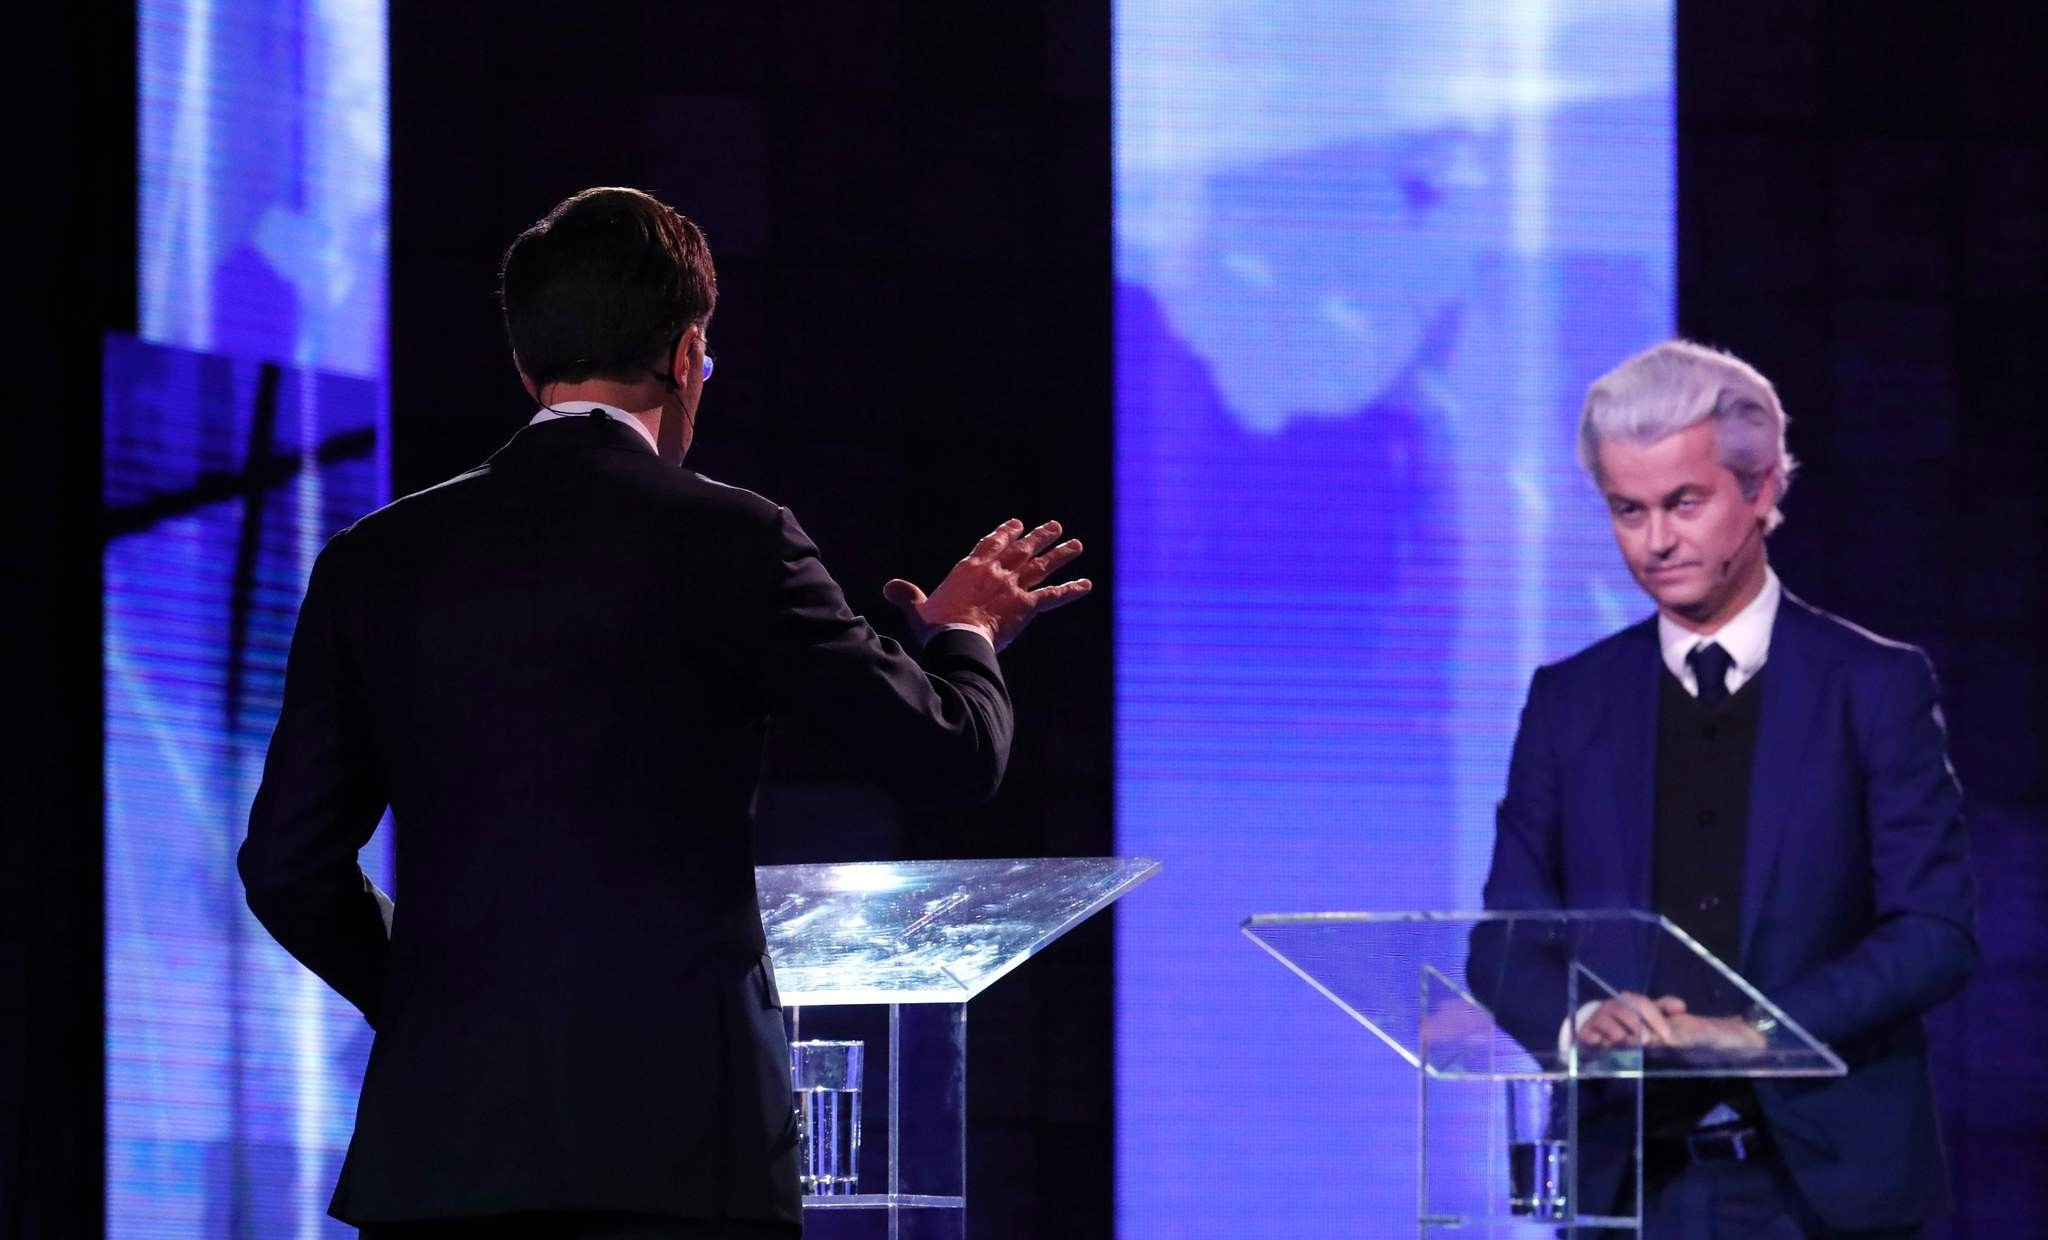 Dutch Prime Minister Mark Rutte (L) gestures while debating with the Netherlands' far-right politician Geert Wilders in Rotterdam on March 13, prior to the Dutch parliamentary elections held on March 15.